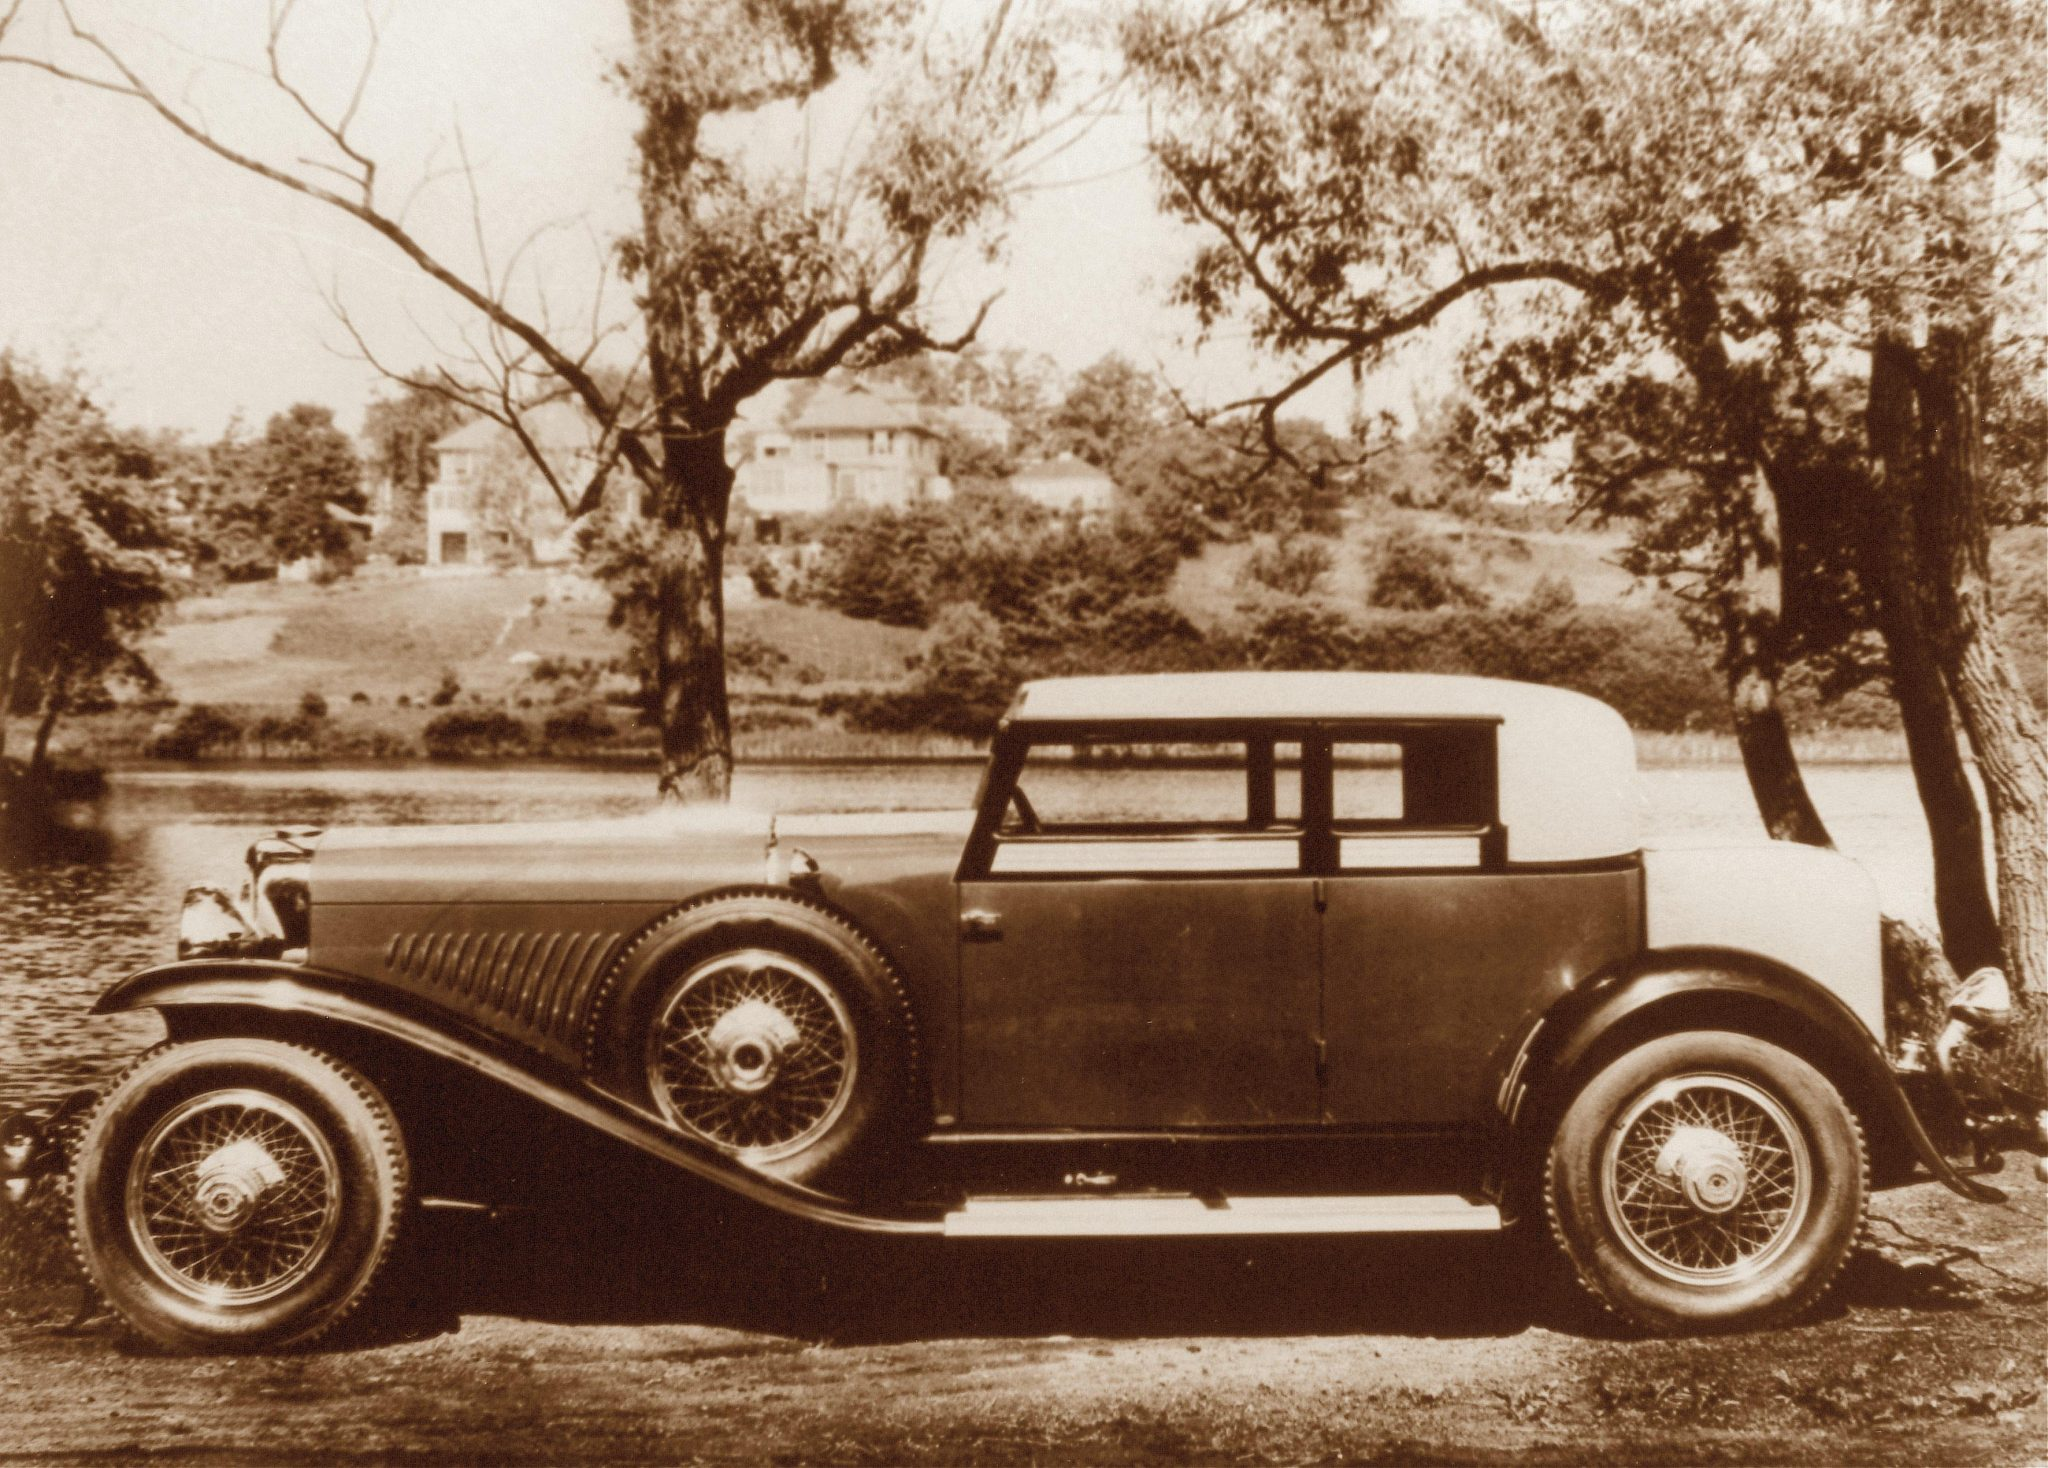 Another fascinating design from the pen of Gordon Buehrig was the Judkins Victoria coupe. This sporty model was a four-passenger car with the look of a convertible Victoria and a large rear seating area. This is car 2375, J-354 photographed when it was new (1932) and today in its beautifully restored condition by owner Frank Kleptz. Judkins built two cars, J-333 and J-352. They sold for $14,750 in 1932.